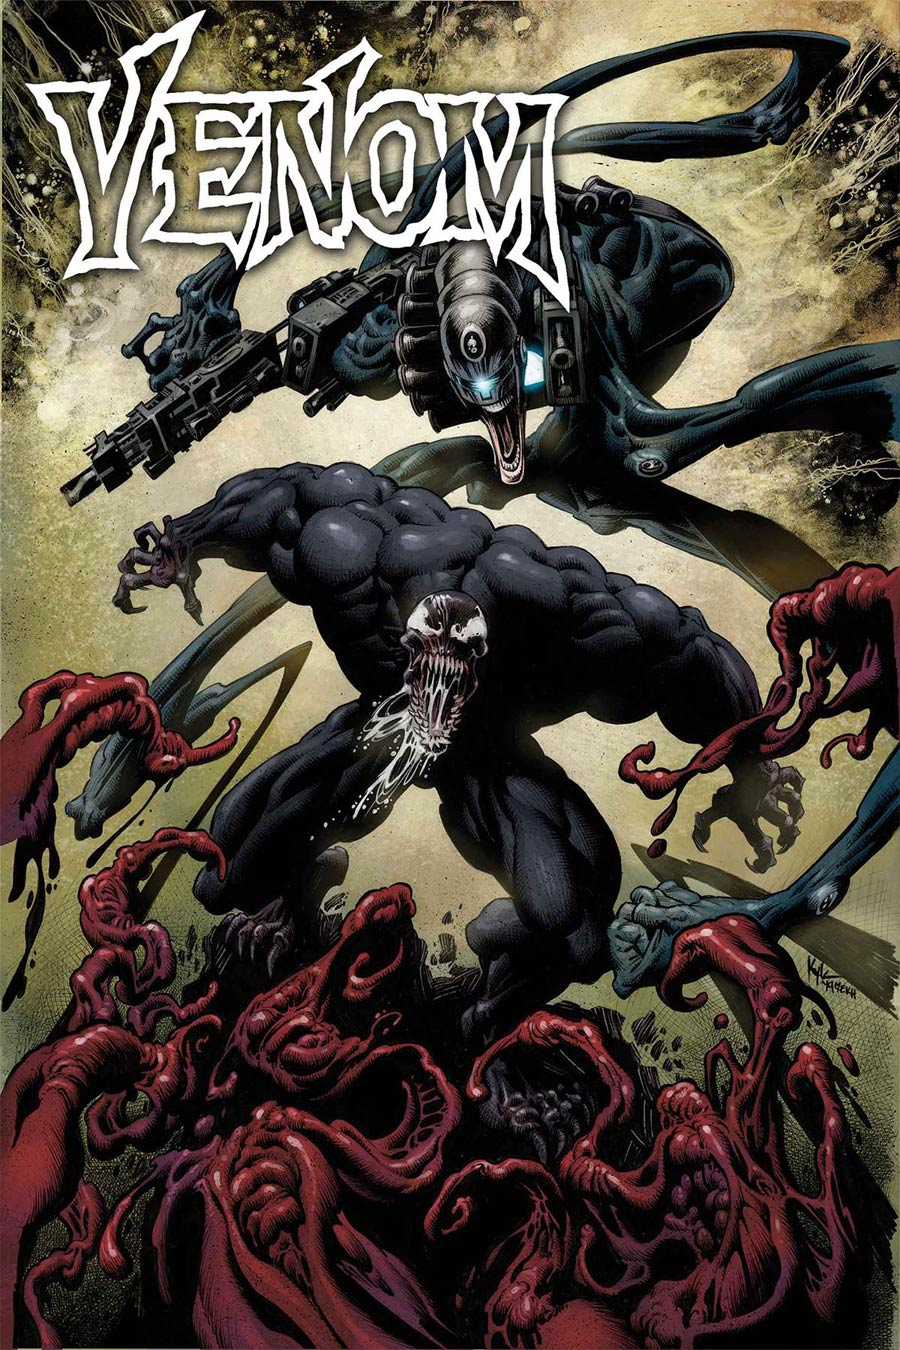 Venom Vol 4 #18 Cover A Regular Kyle Hotz Cover (Absolute Carnage Tie-In)